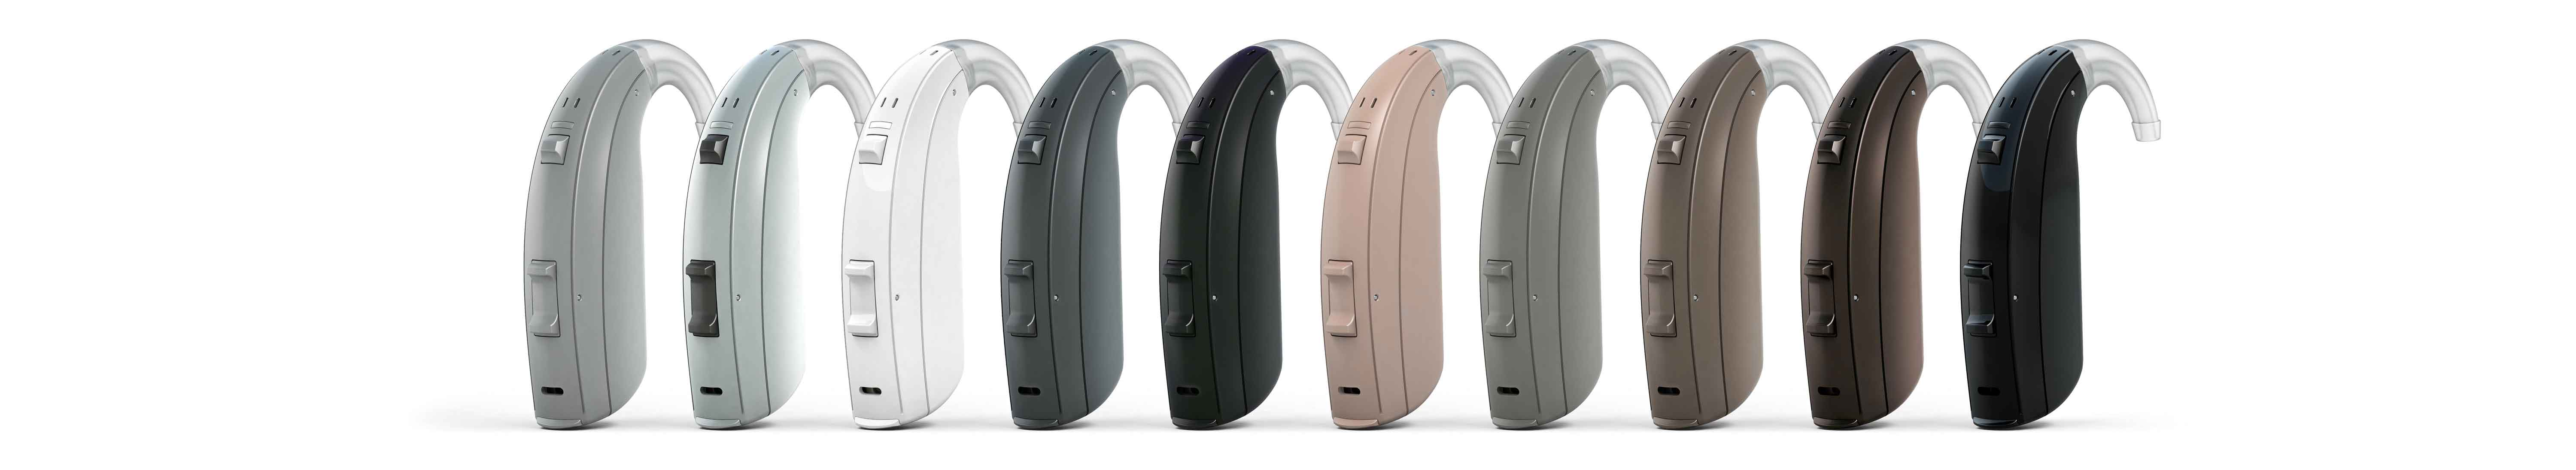 ReSound ENZO Q 88-98 color line up